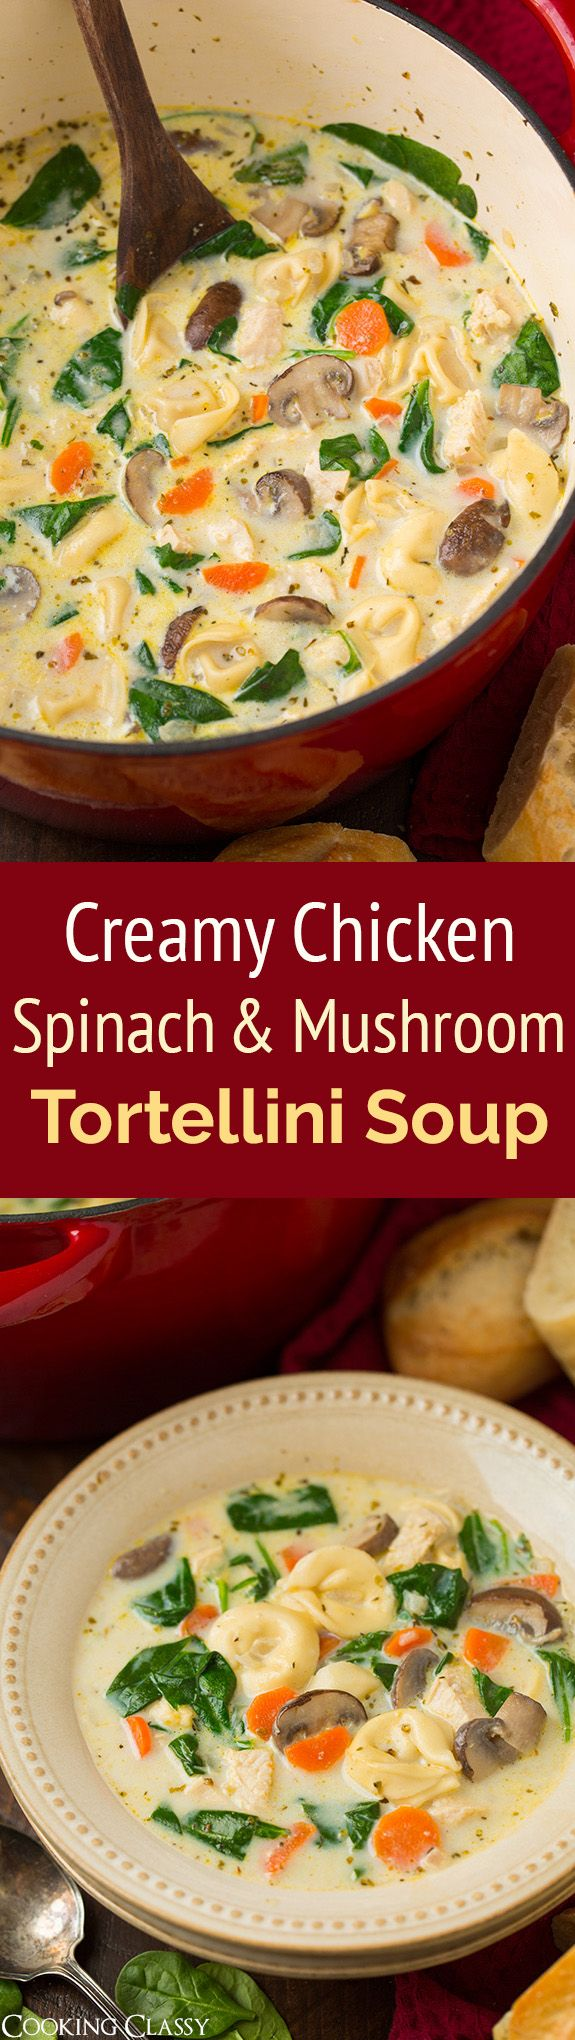 Creamy Chicken, Spinach and Mushroom Tortellini Soup - this hearty, comforting…